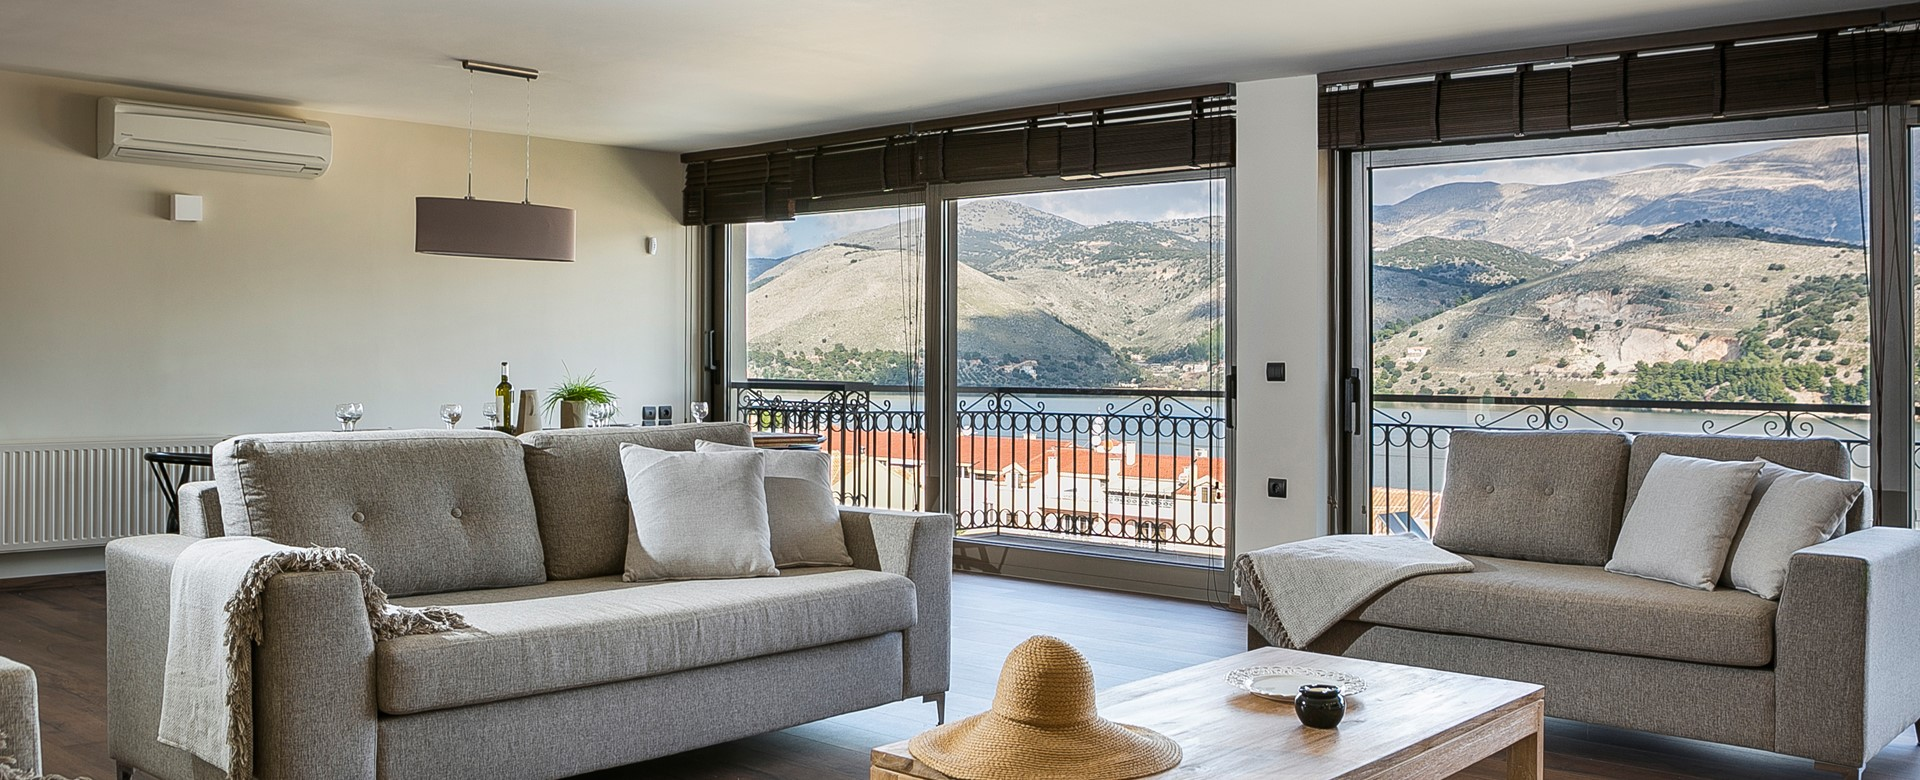 Panoramic views of the bay and surrounding hills inside or out on the balcony of Marina Penthouse Apartment, Argostoli, Kefalonia, Greek Islands